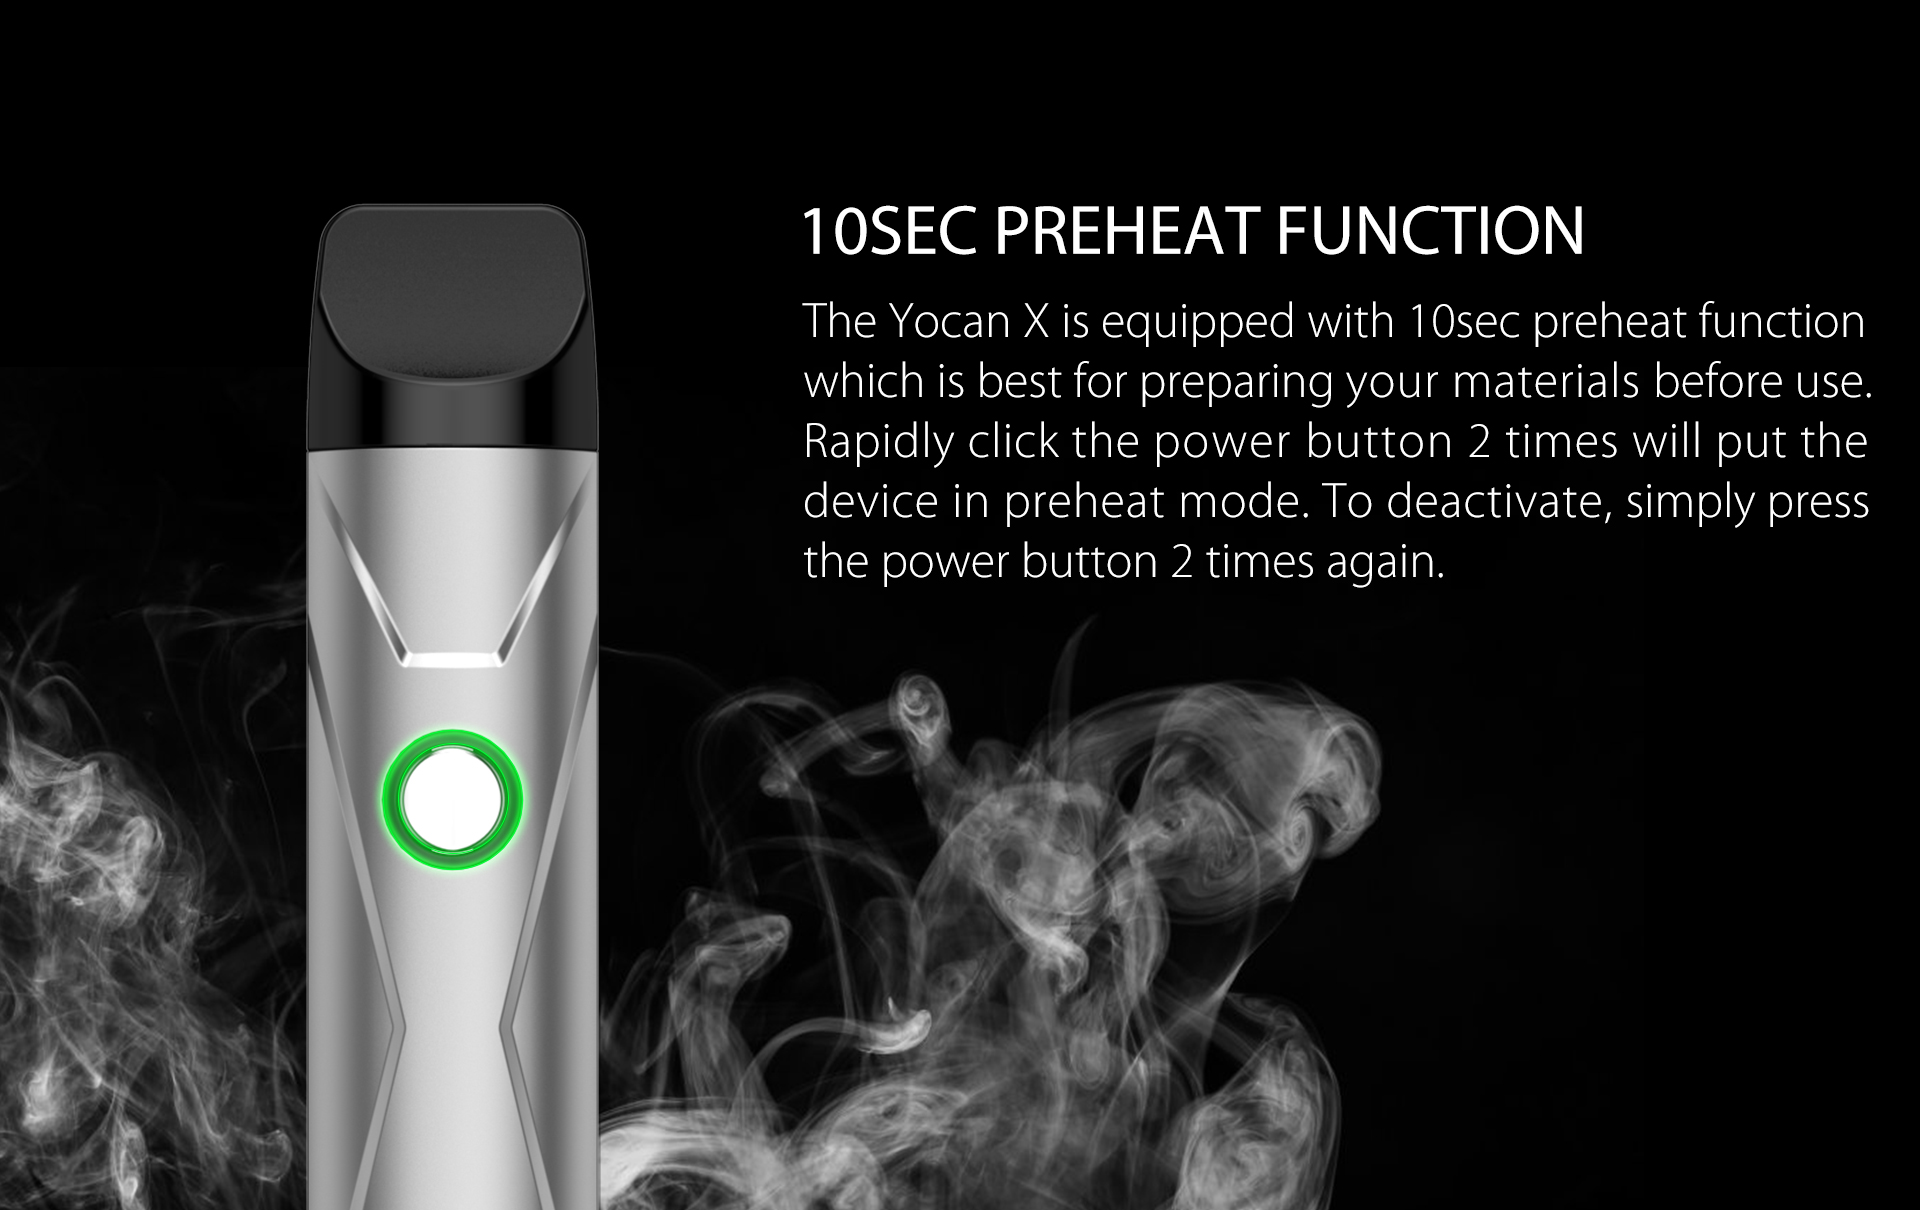 Yocan X Pod System is equipped with 10sec preheat